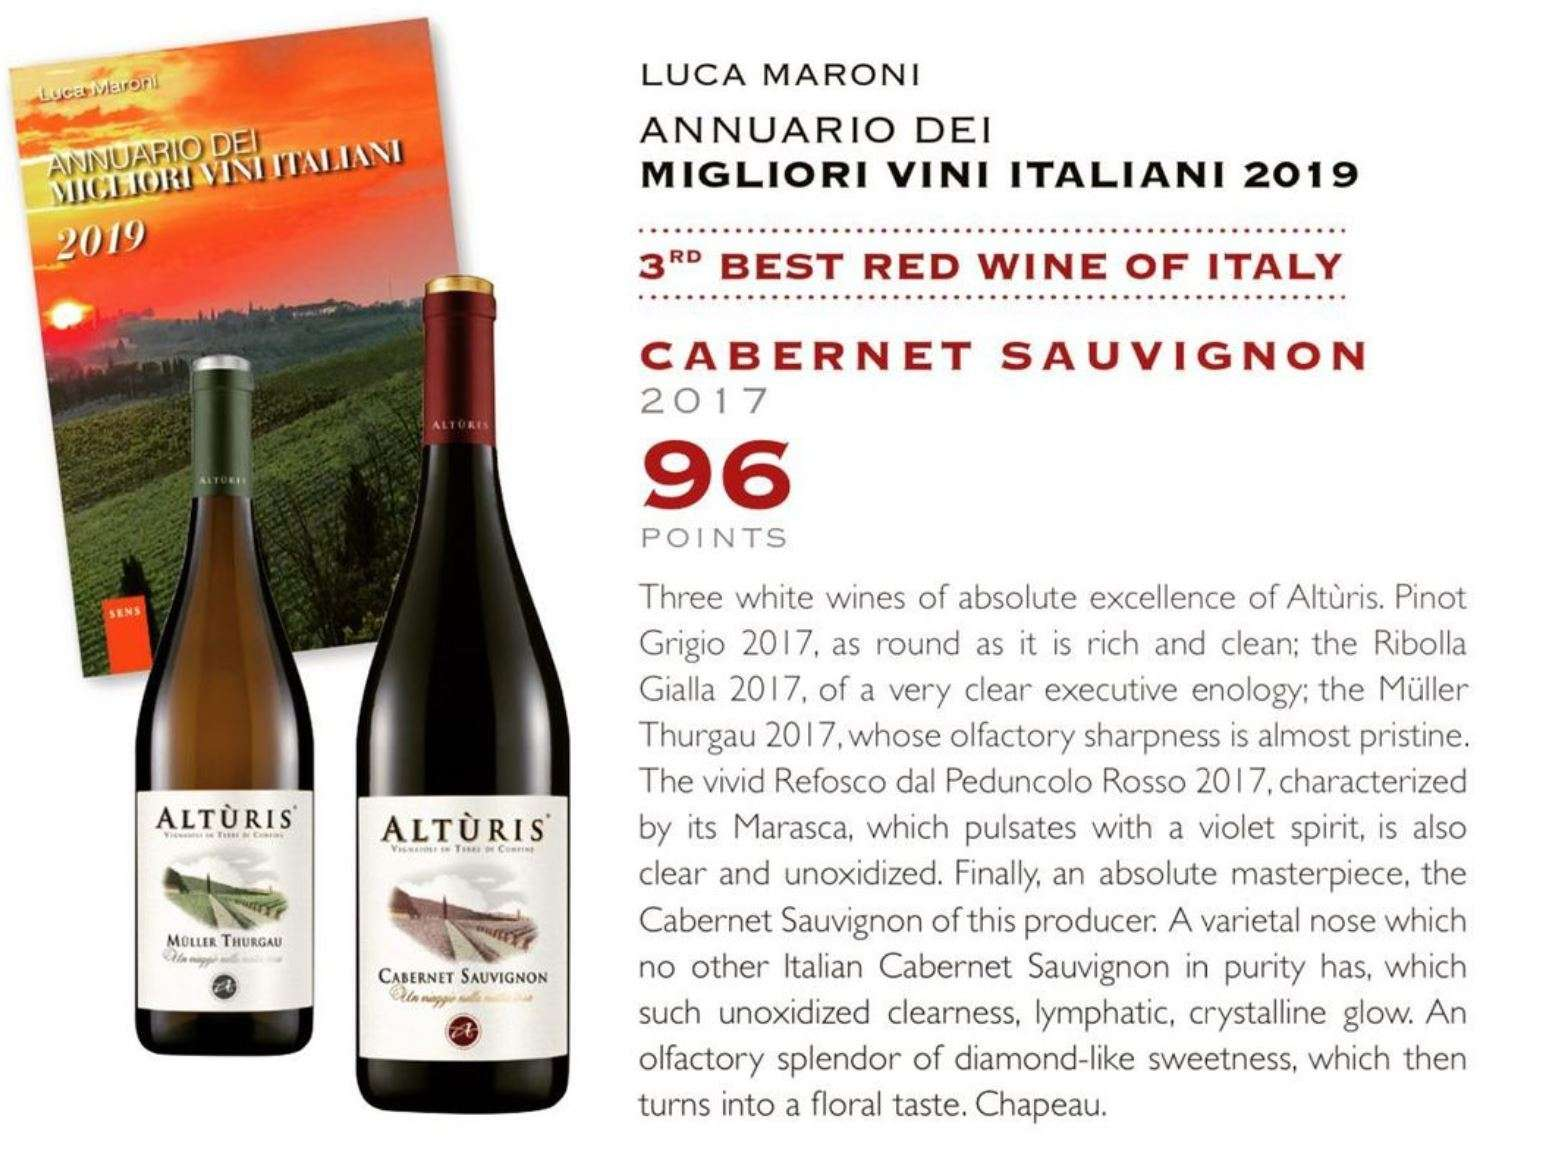 Third Best Red Wine of Italy